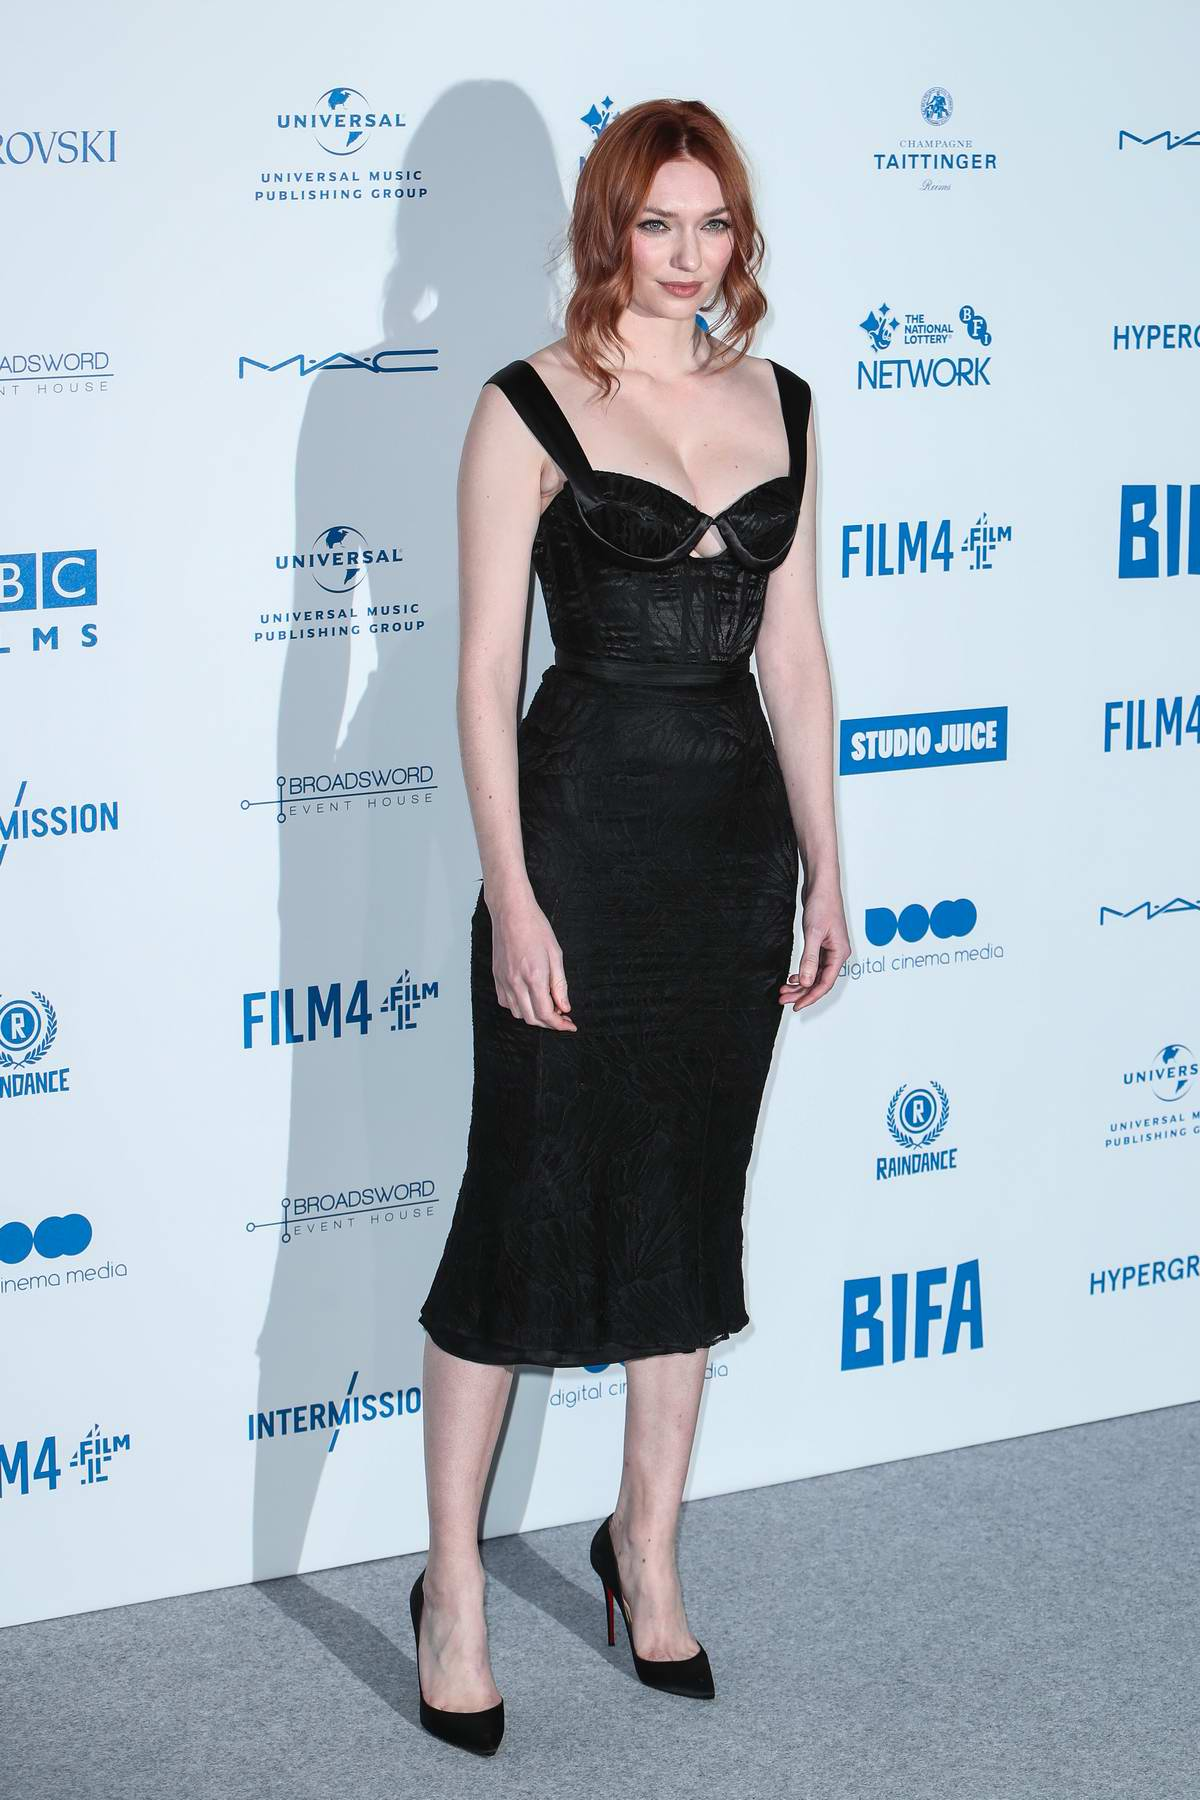 Eleanor Tomlinson attends the British Independent Film Awards 2019 at Old Billingsgate in London, UK